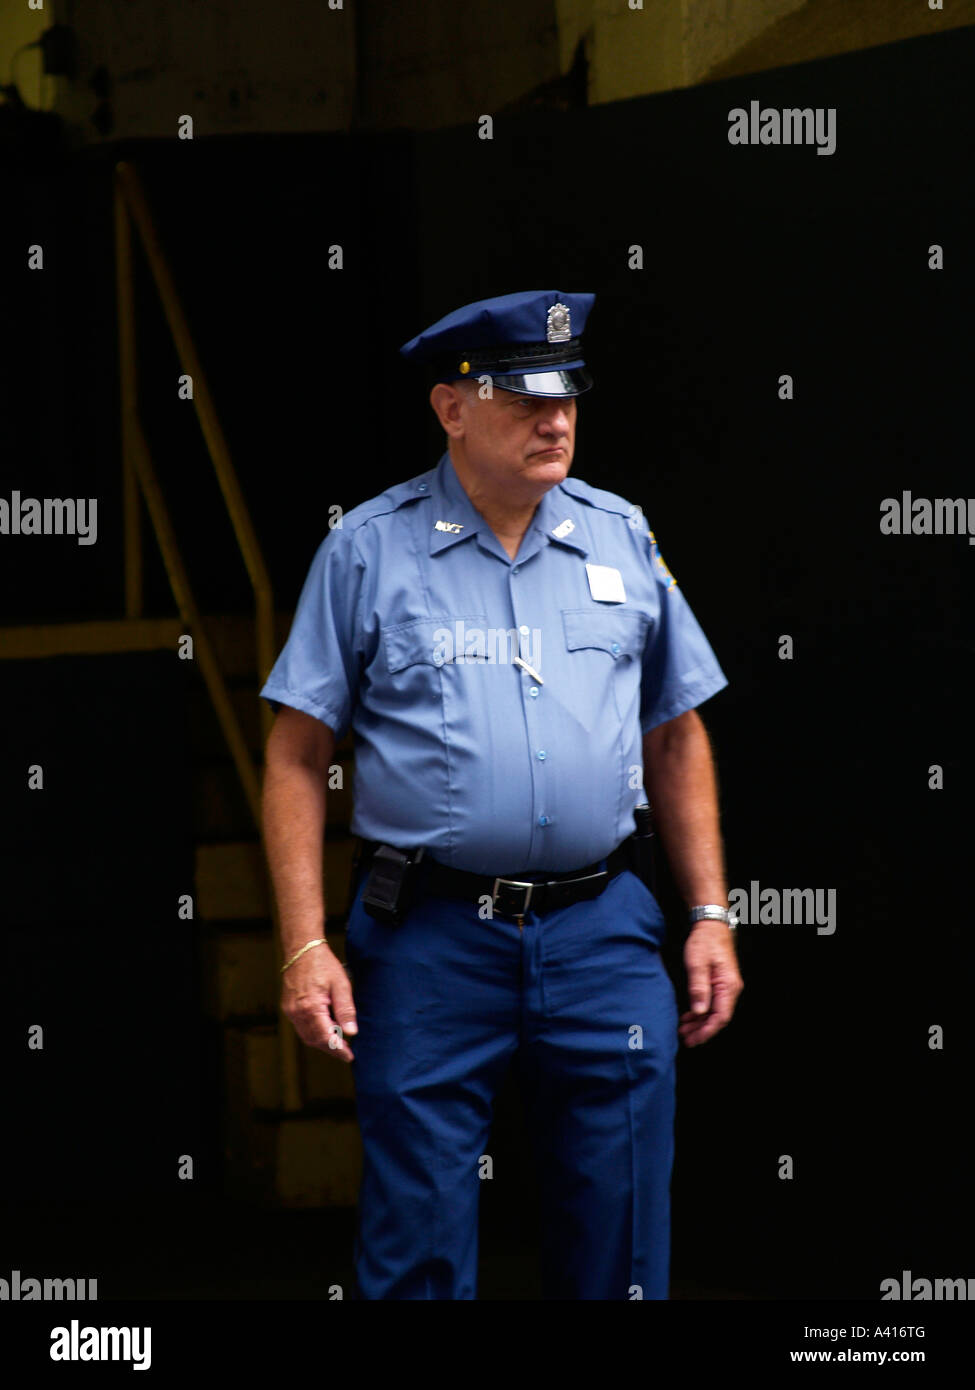 Security Guard 42nd Street New York - Stock Image